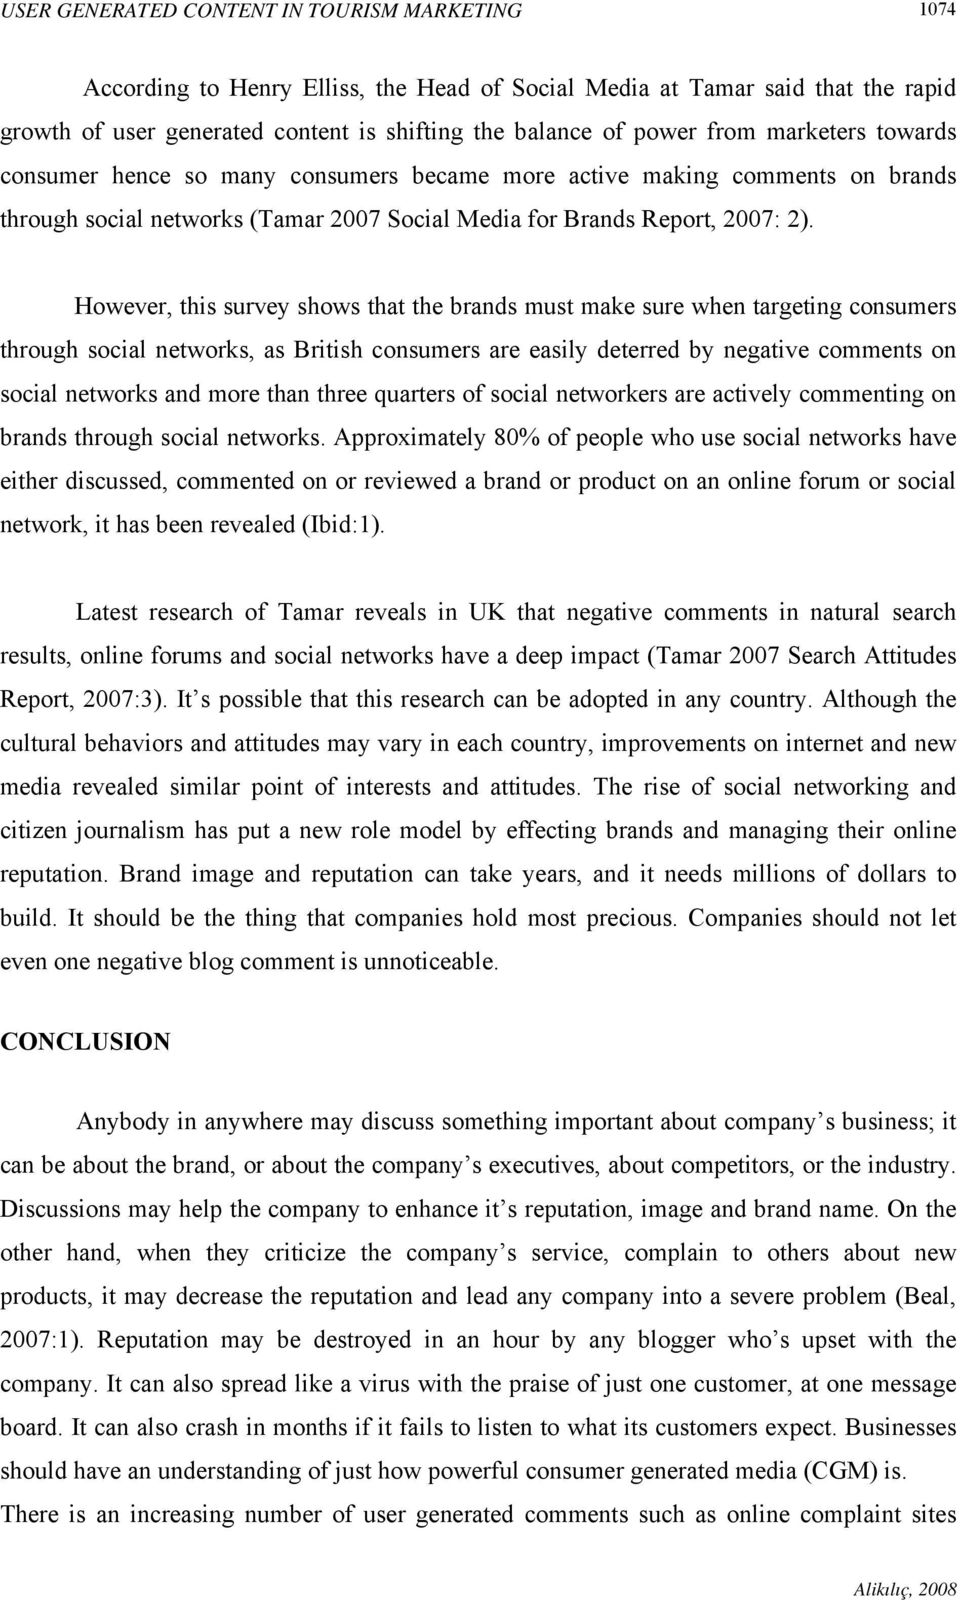 However, this survey shows that the brands must make sure when targeting consumers through social networks, as British consumers are easily deterred by negative comments on social networks and more